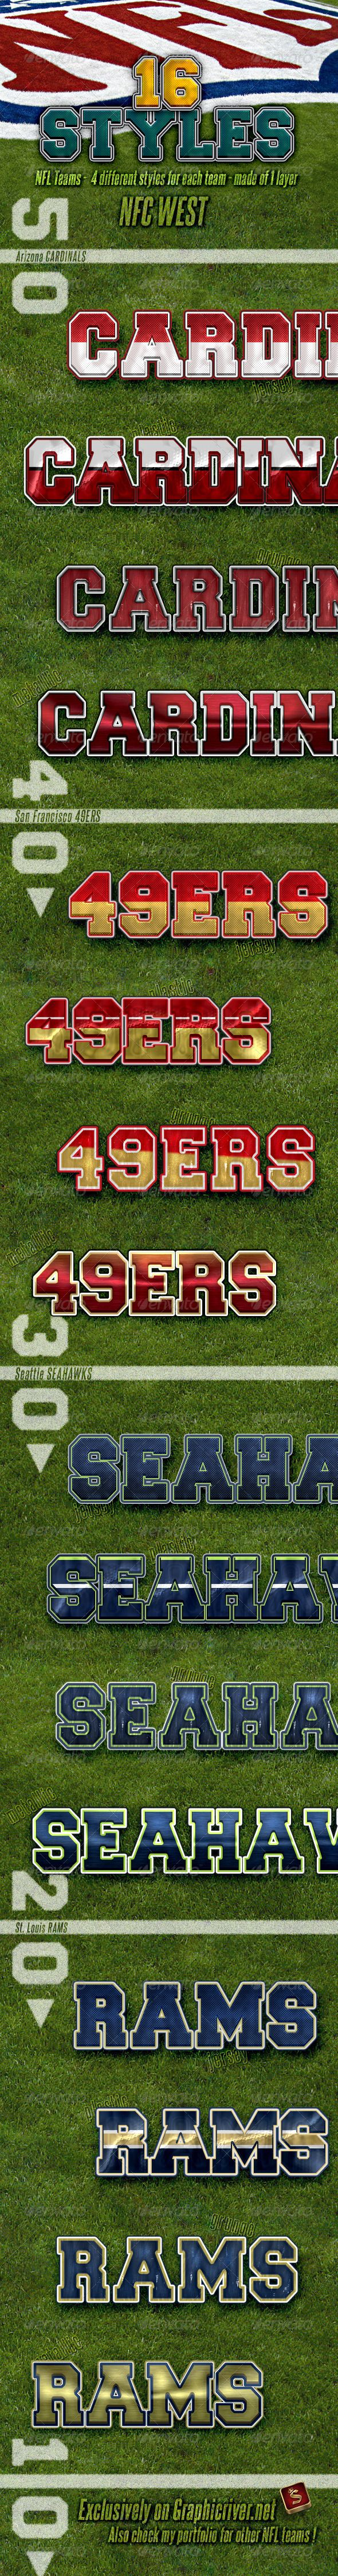 NFL Football Styles - NFC West #GraphicRiver NFL Football Photoshop Layer Styles – Part 8 NFC WEST NFL Football Photoshop layer styles are the best for your titles, buttons, shapes, etc. Styles are usable for any Text and it also looks good on Shapes or Buttons. Don't forget to check all parts of NFL Team Styles NFL Football Layer Styles – Features All styles are made of 1 layer only Unique Styles Applicable with just one click Unique look and clean design Can be used anywhere ASL and PSD…